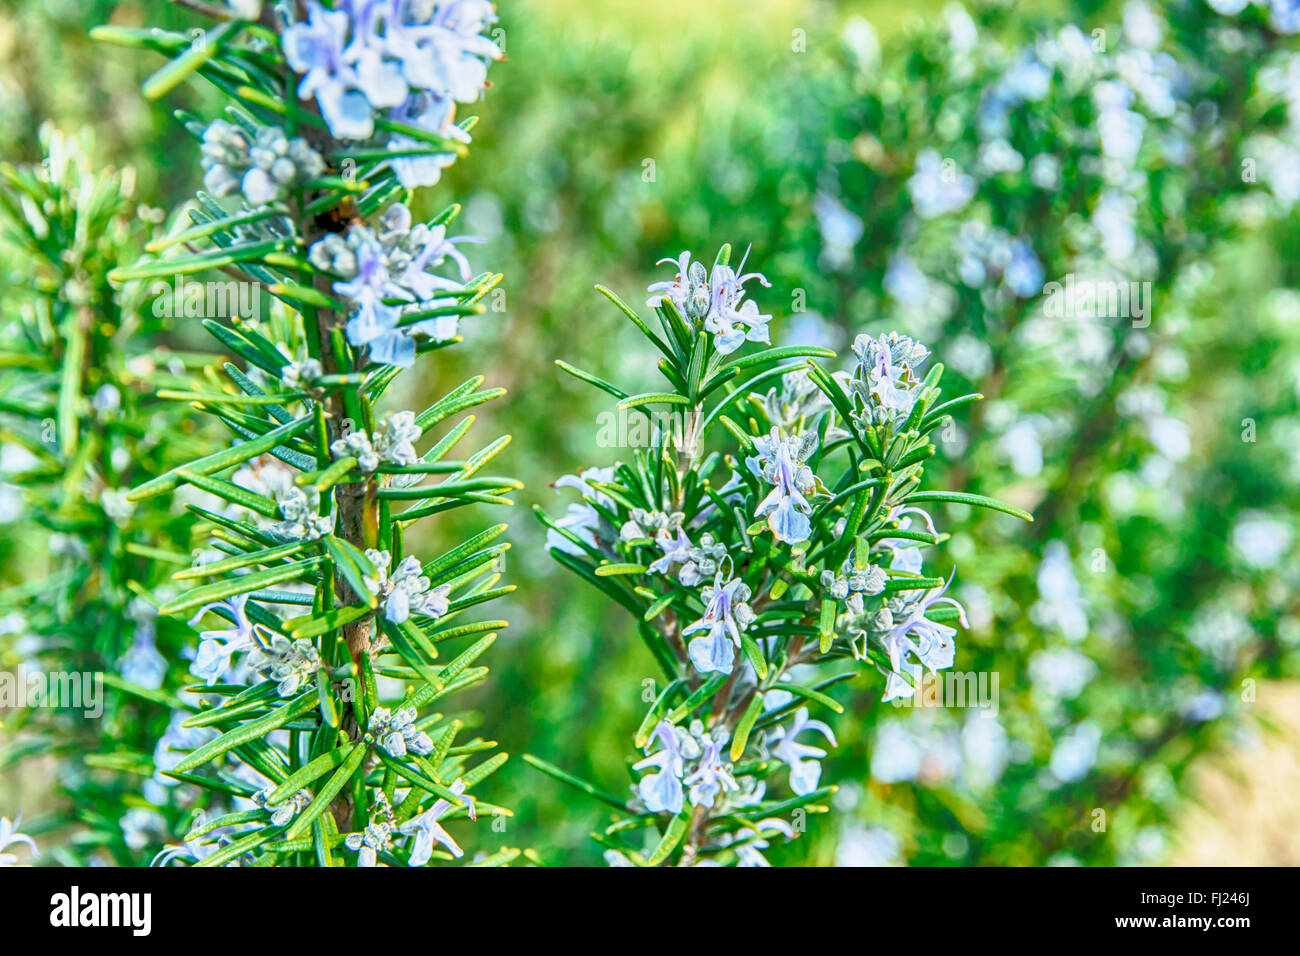 rosemary in flowers blooming with blurred background spring - Stock Image